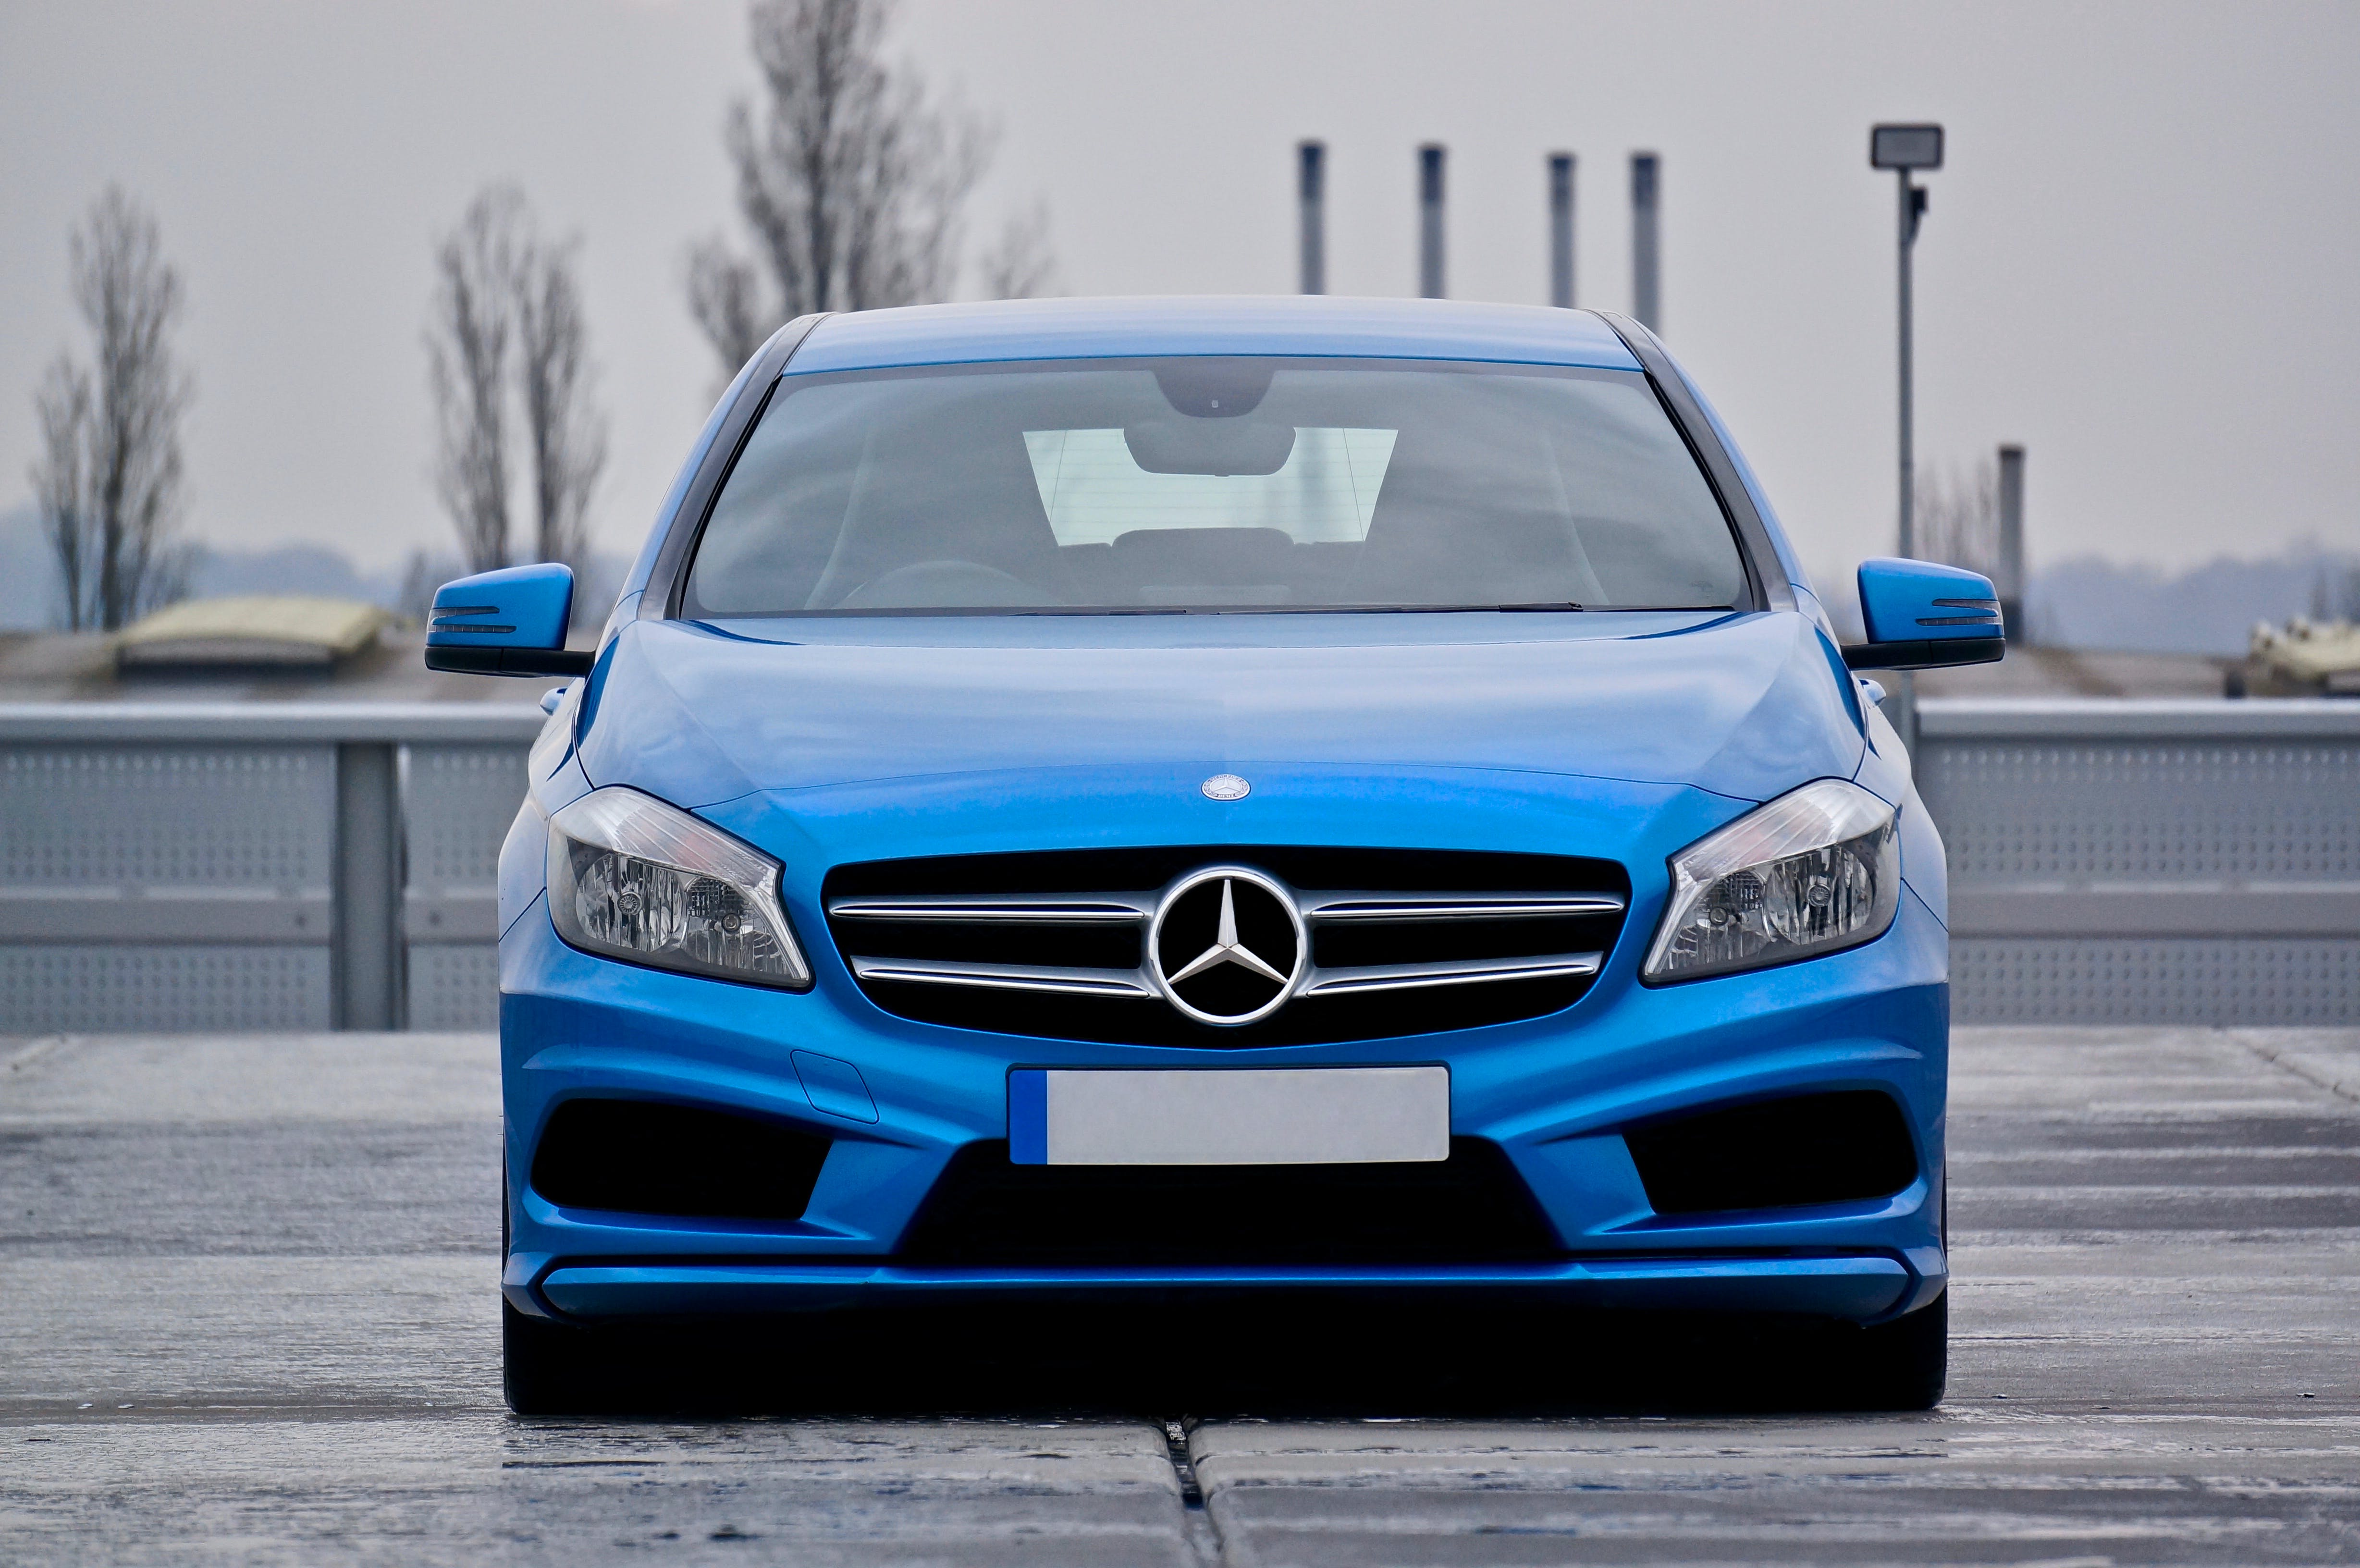 Blue Mercedes Benz Car Parked